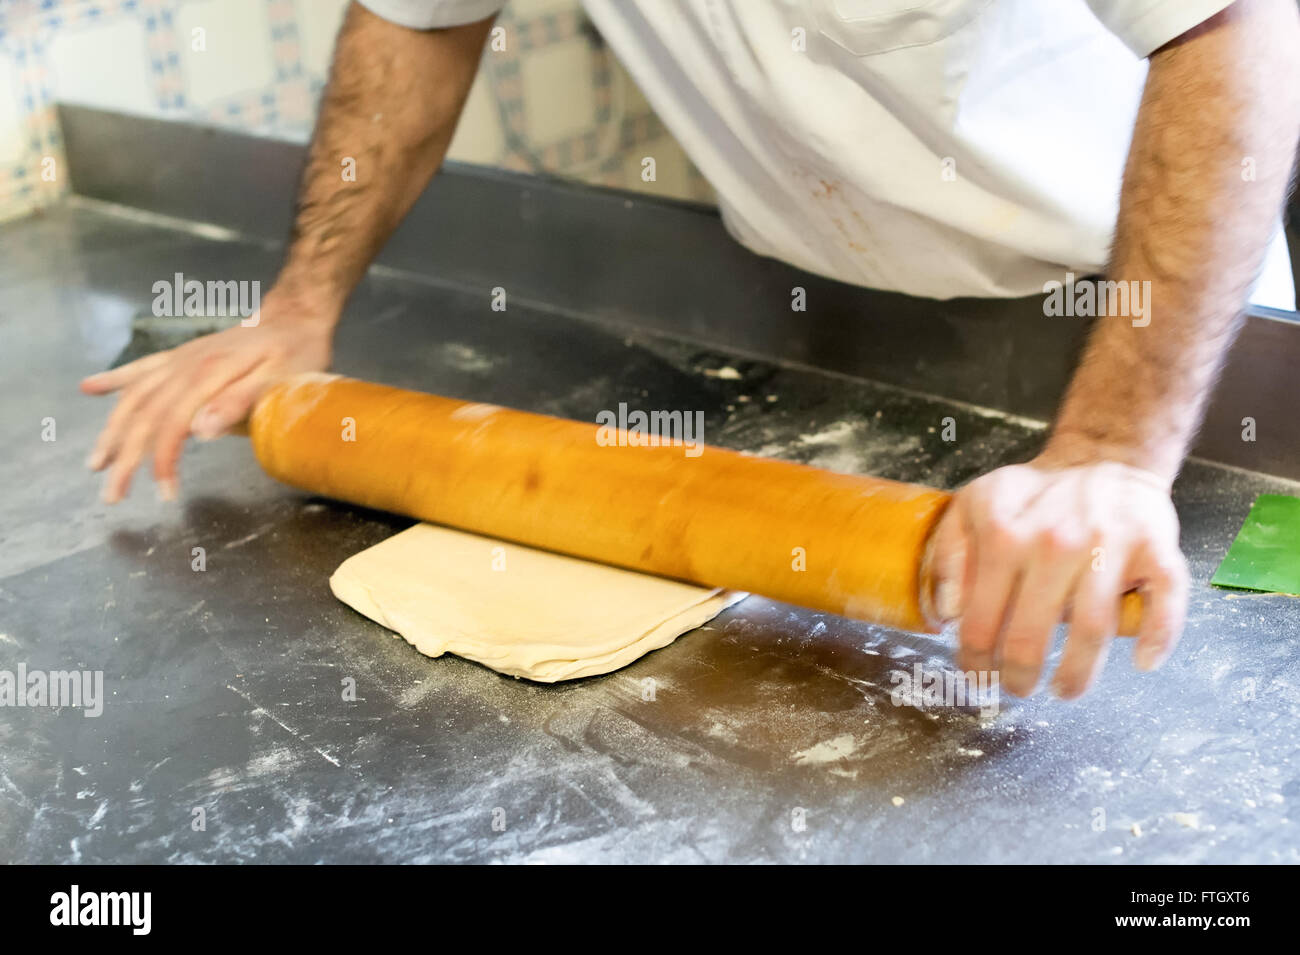 Close Up Action Shot of Male Baker Rolling Out Dough with Wooden Rolling Pin on Metal Surface in Professional Bakery - Stock Image